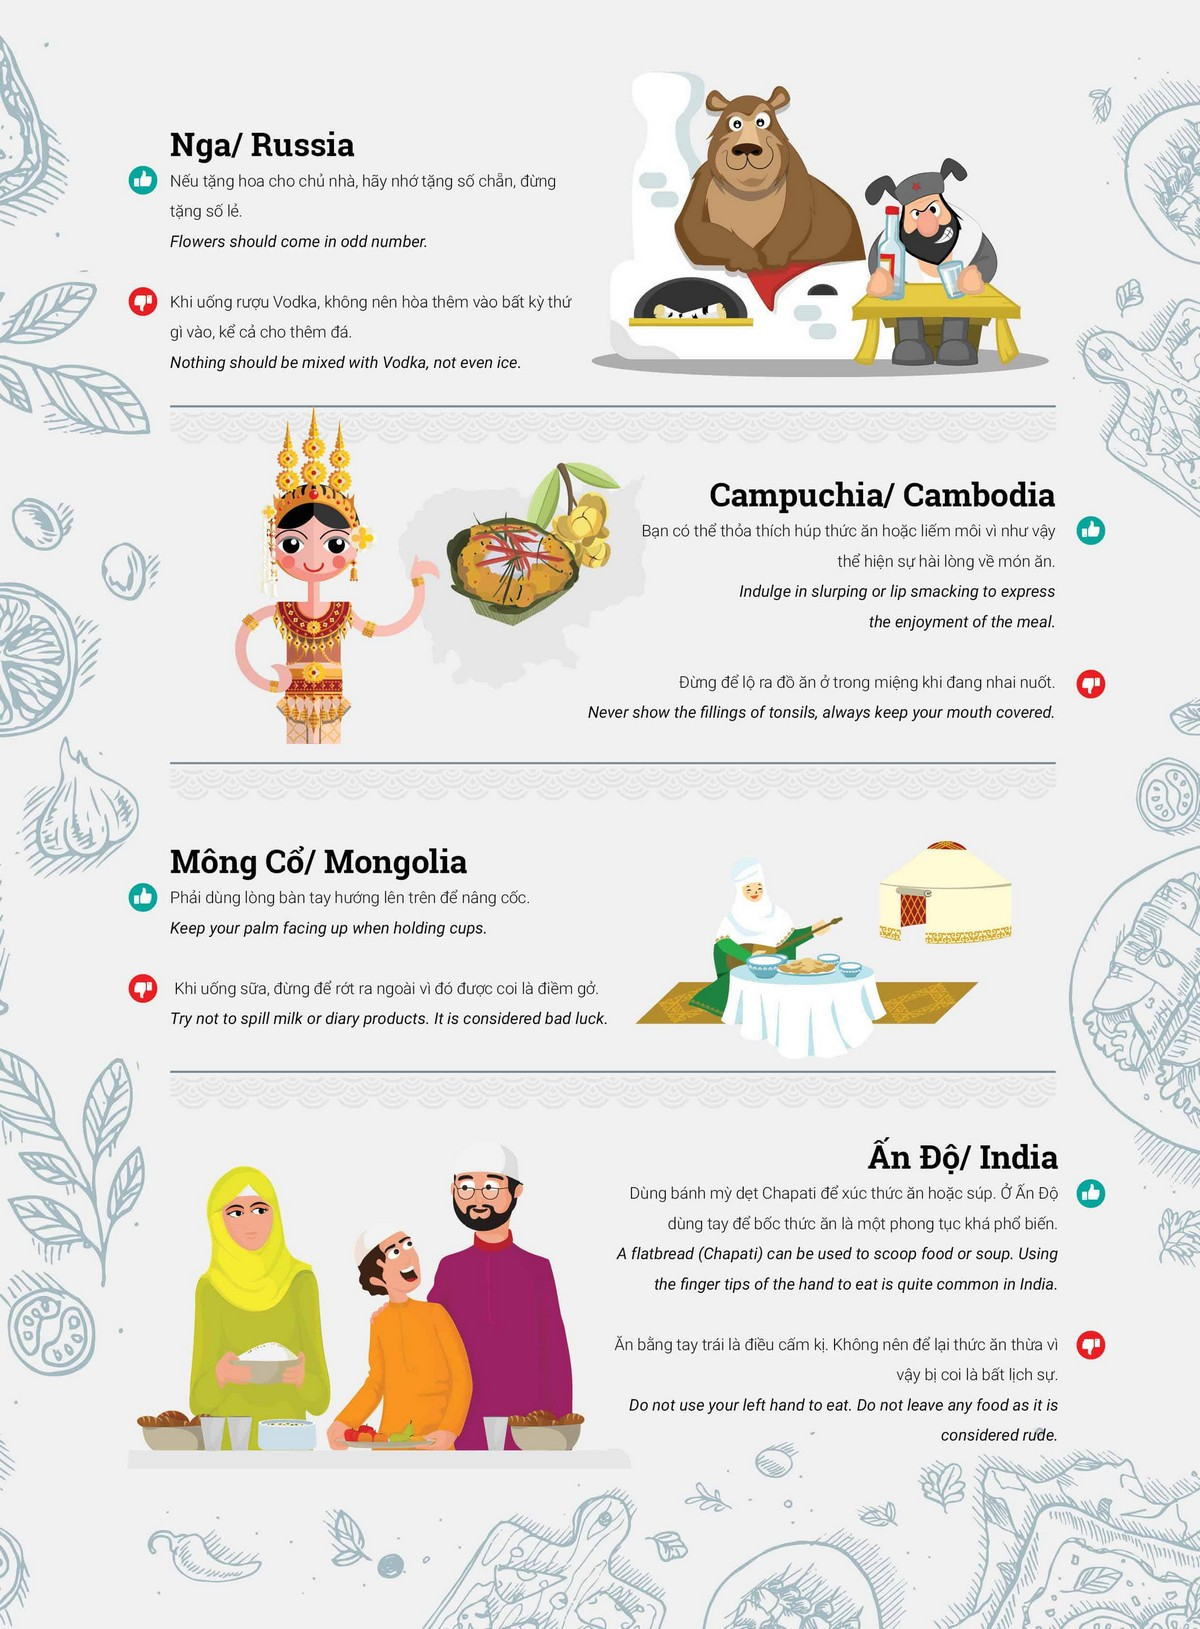 Wanderlust Tips Magazine | Dining etiquette in different countries